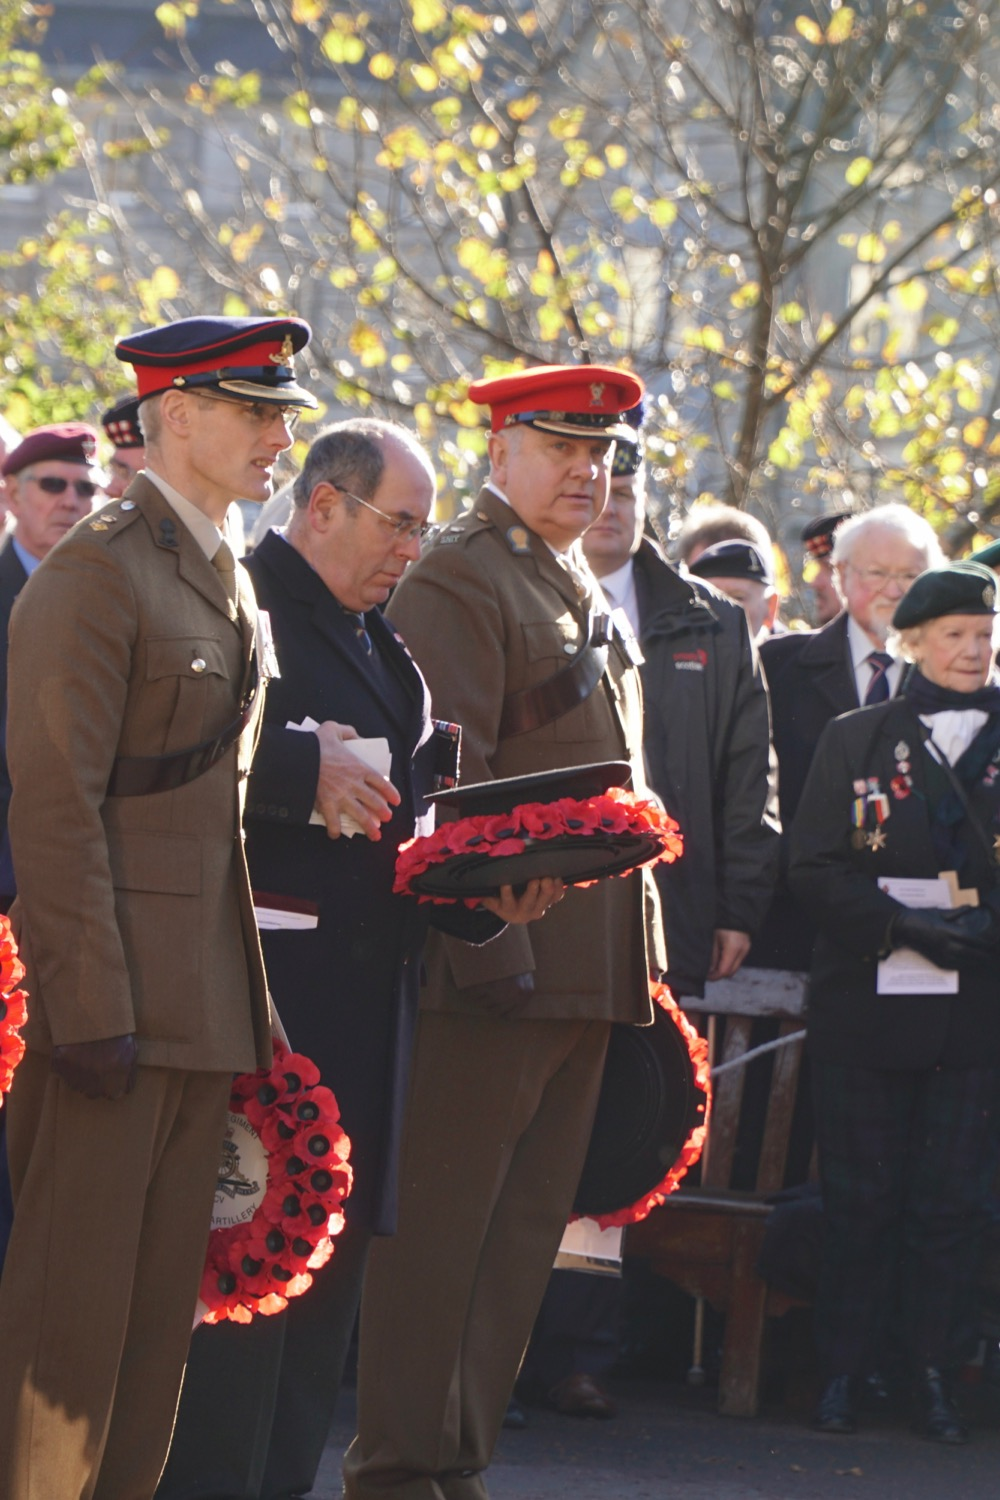 Wreath layers at the Garden of Remembrance opening ceremony 2018